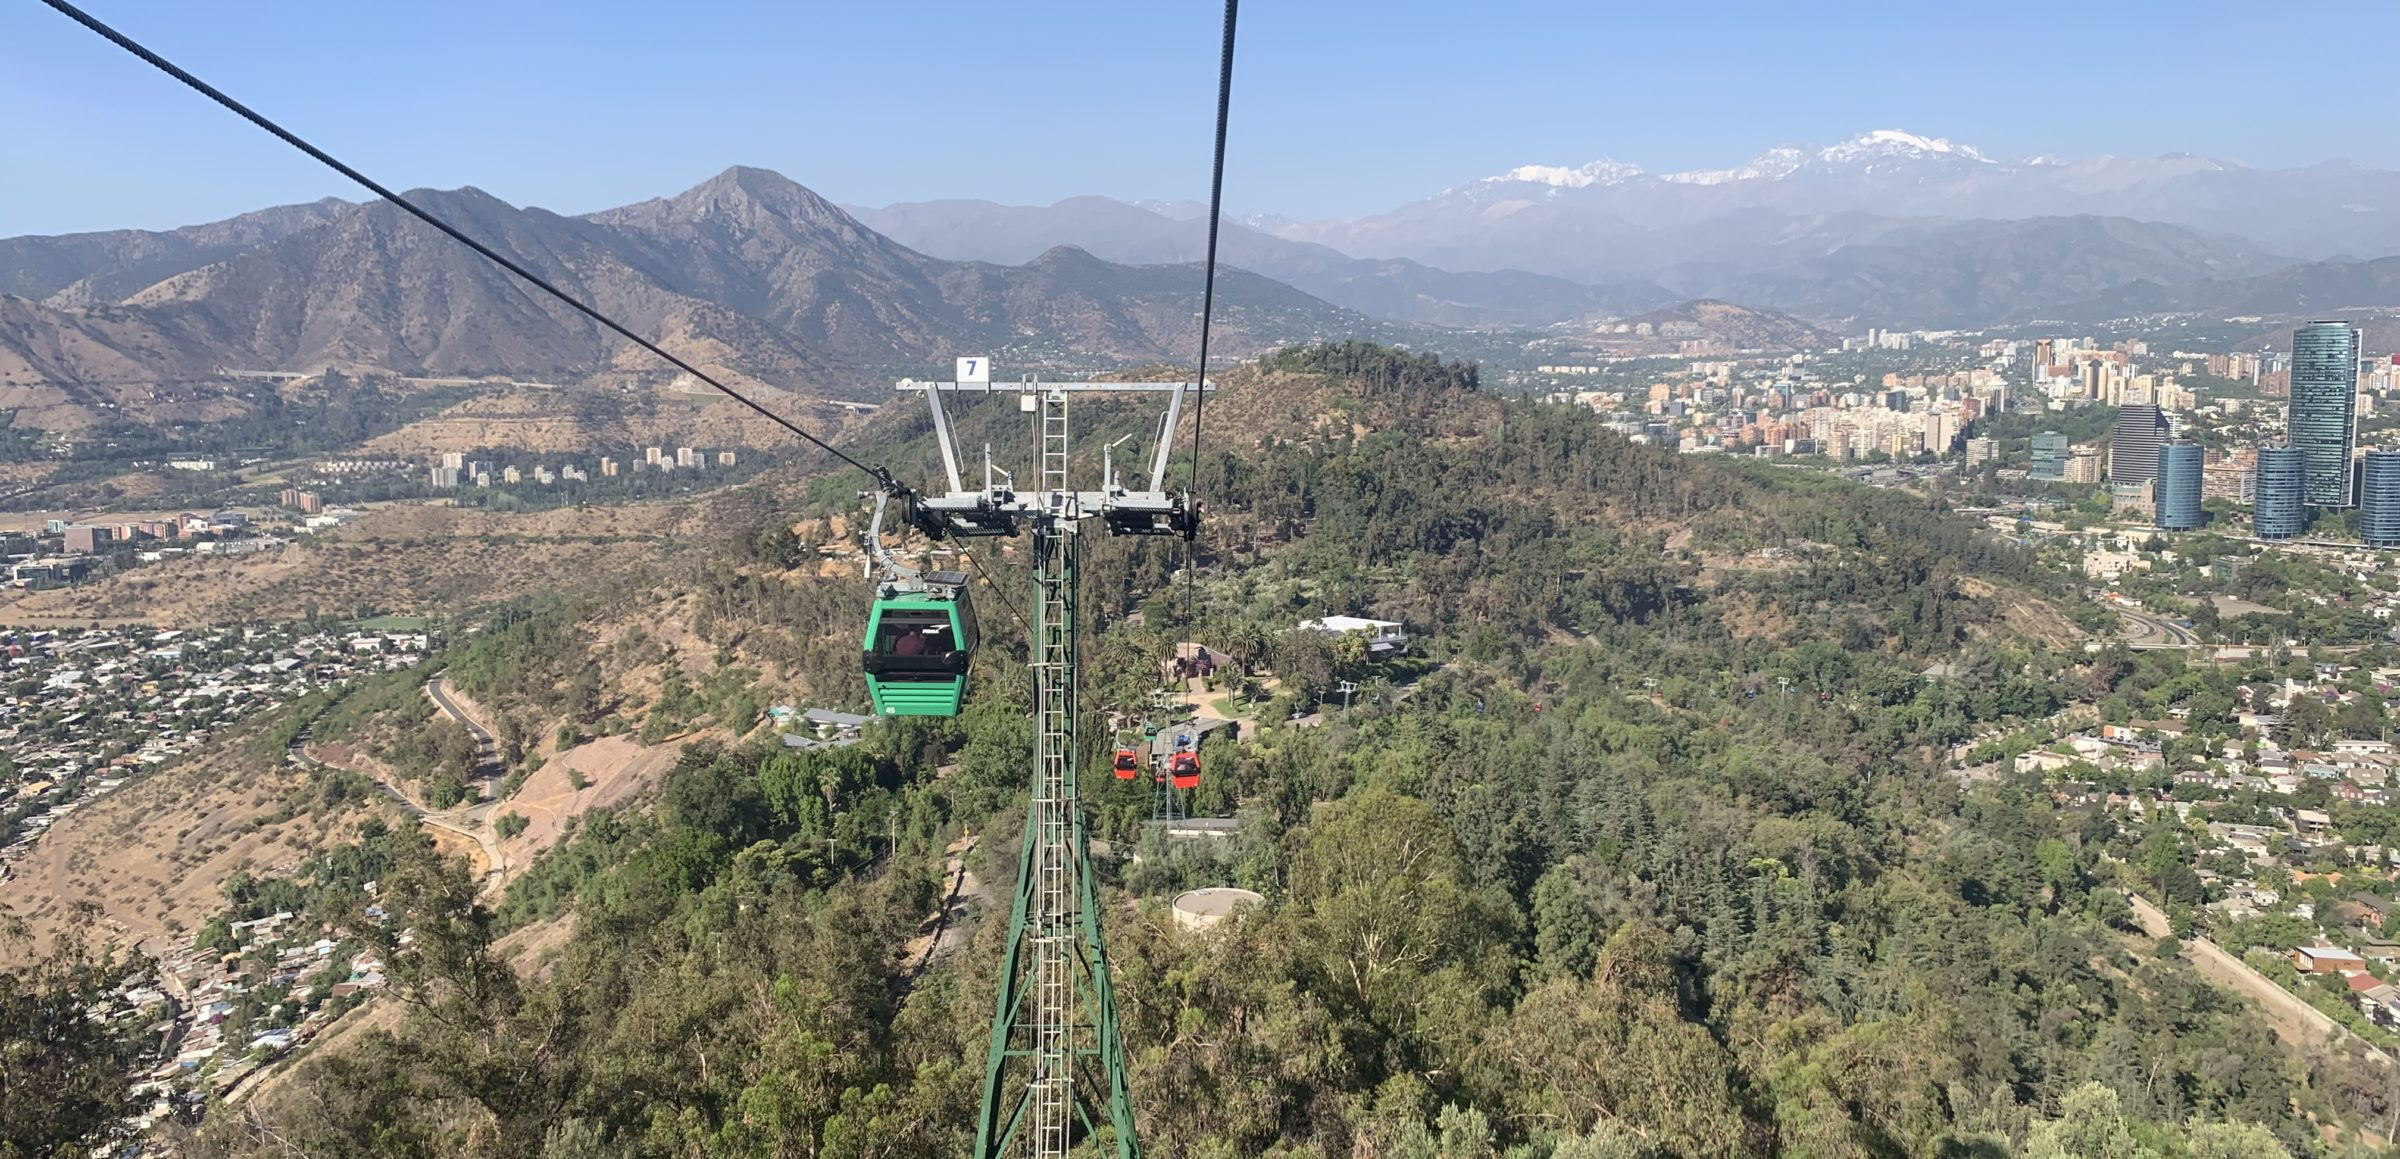 On the teleférico down from San Cristóbal Hill